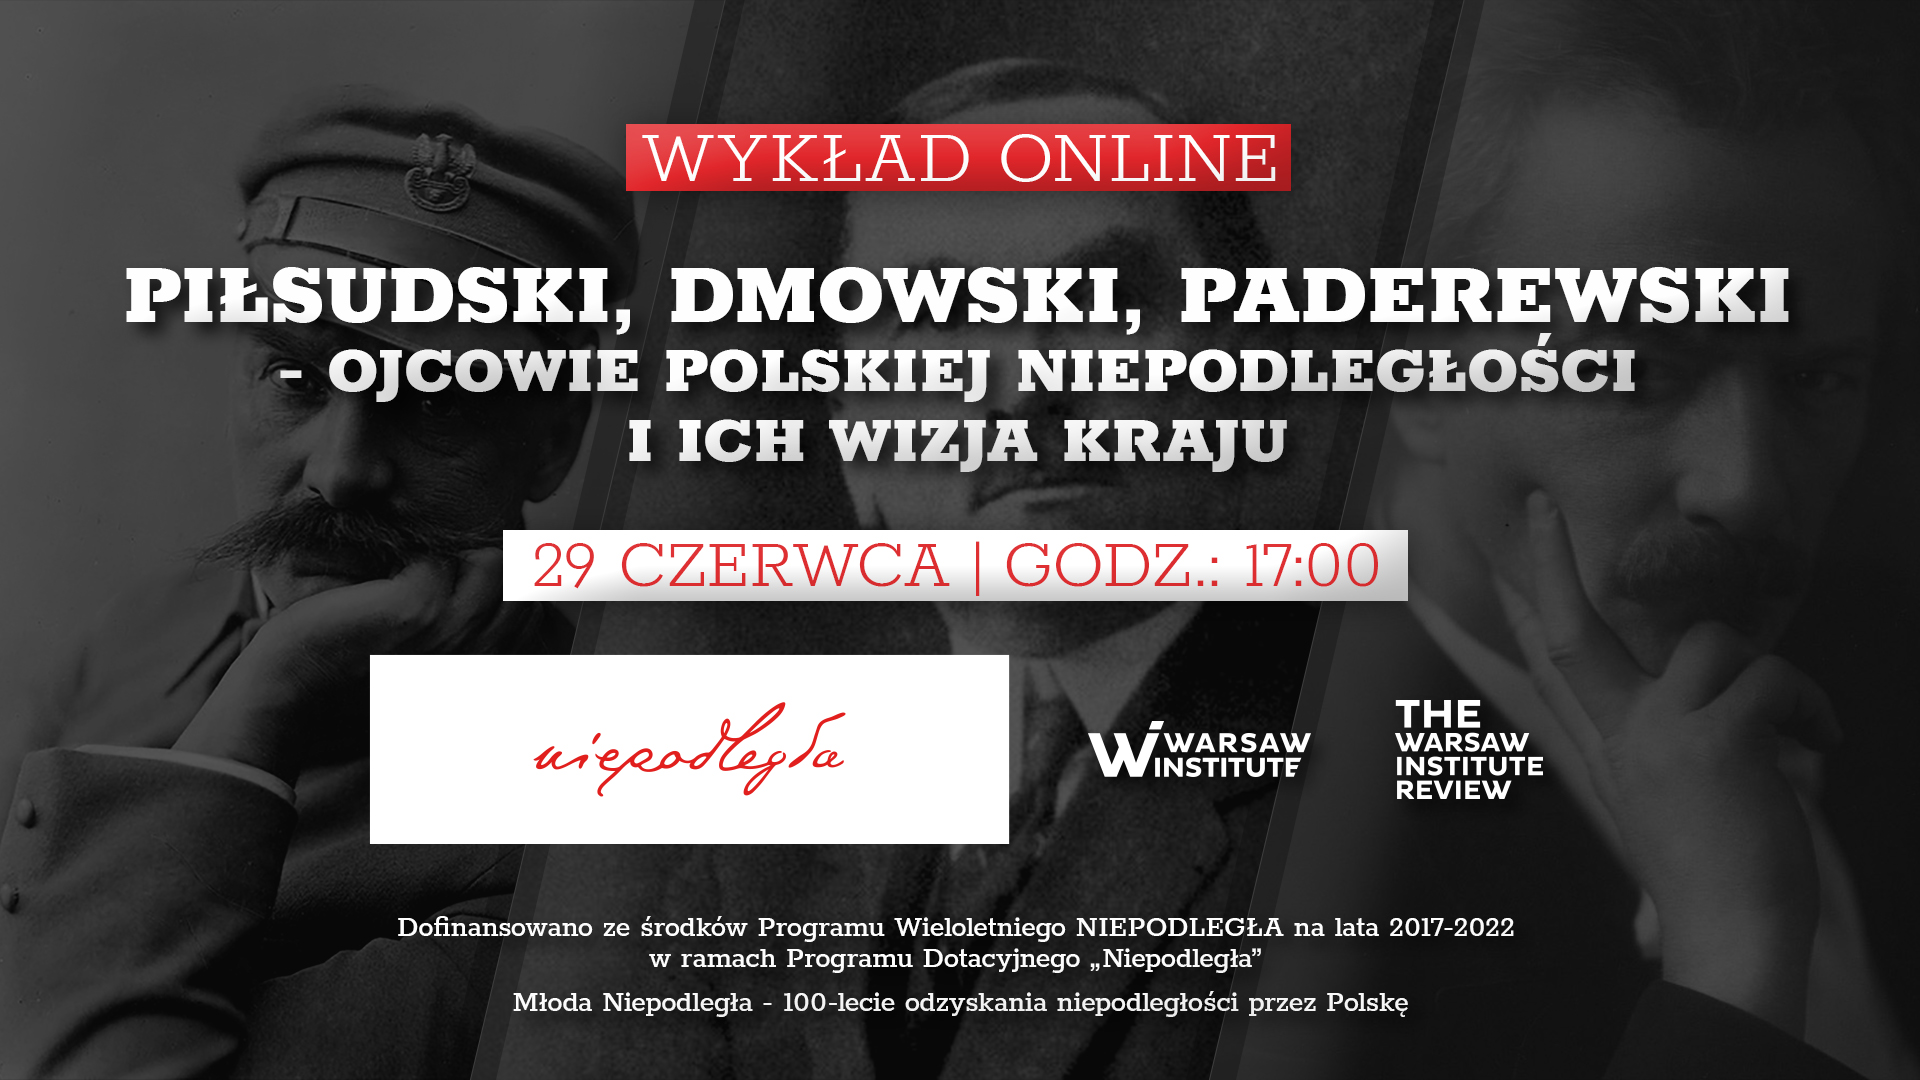 Event Summary: Piłsudski, Dmowski, and Paderewski – the Fathers of Polish Independence and Their Vision of the Country